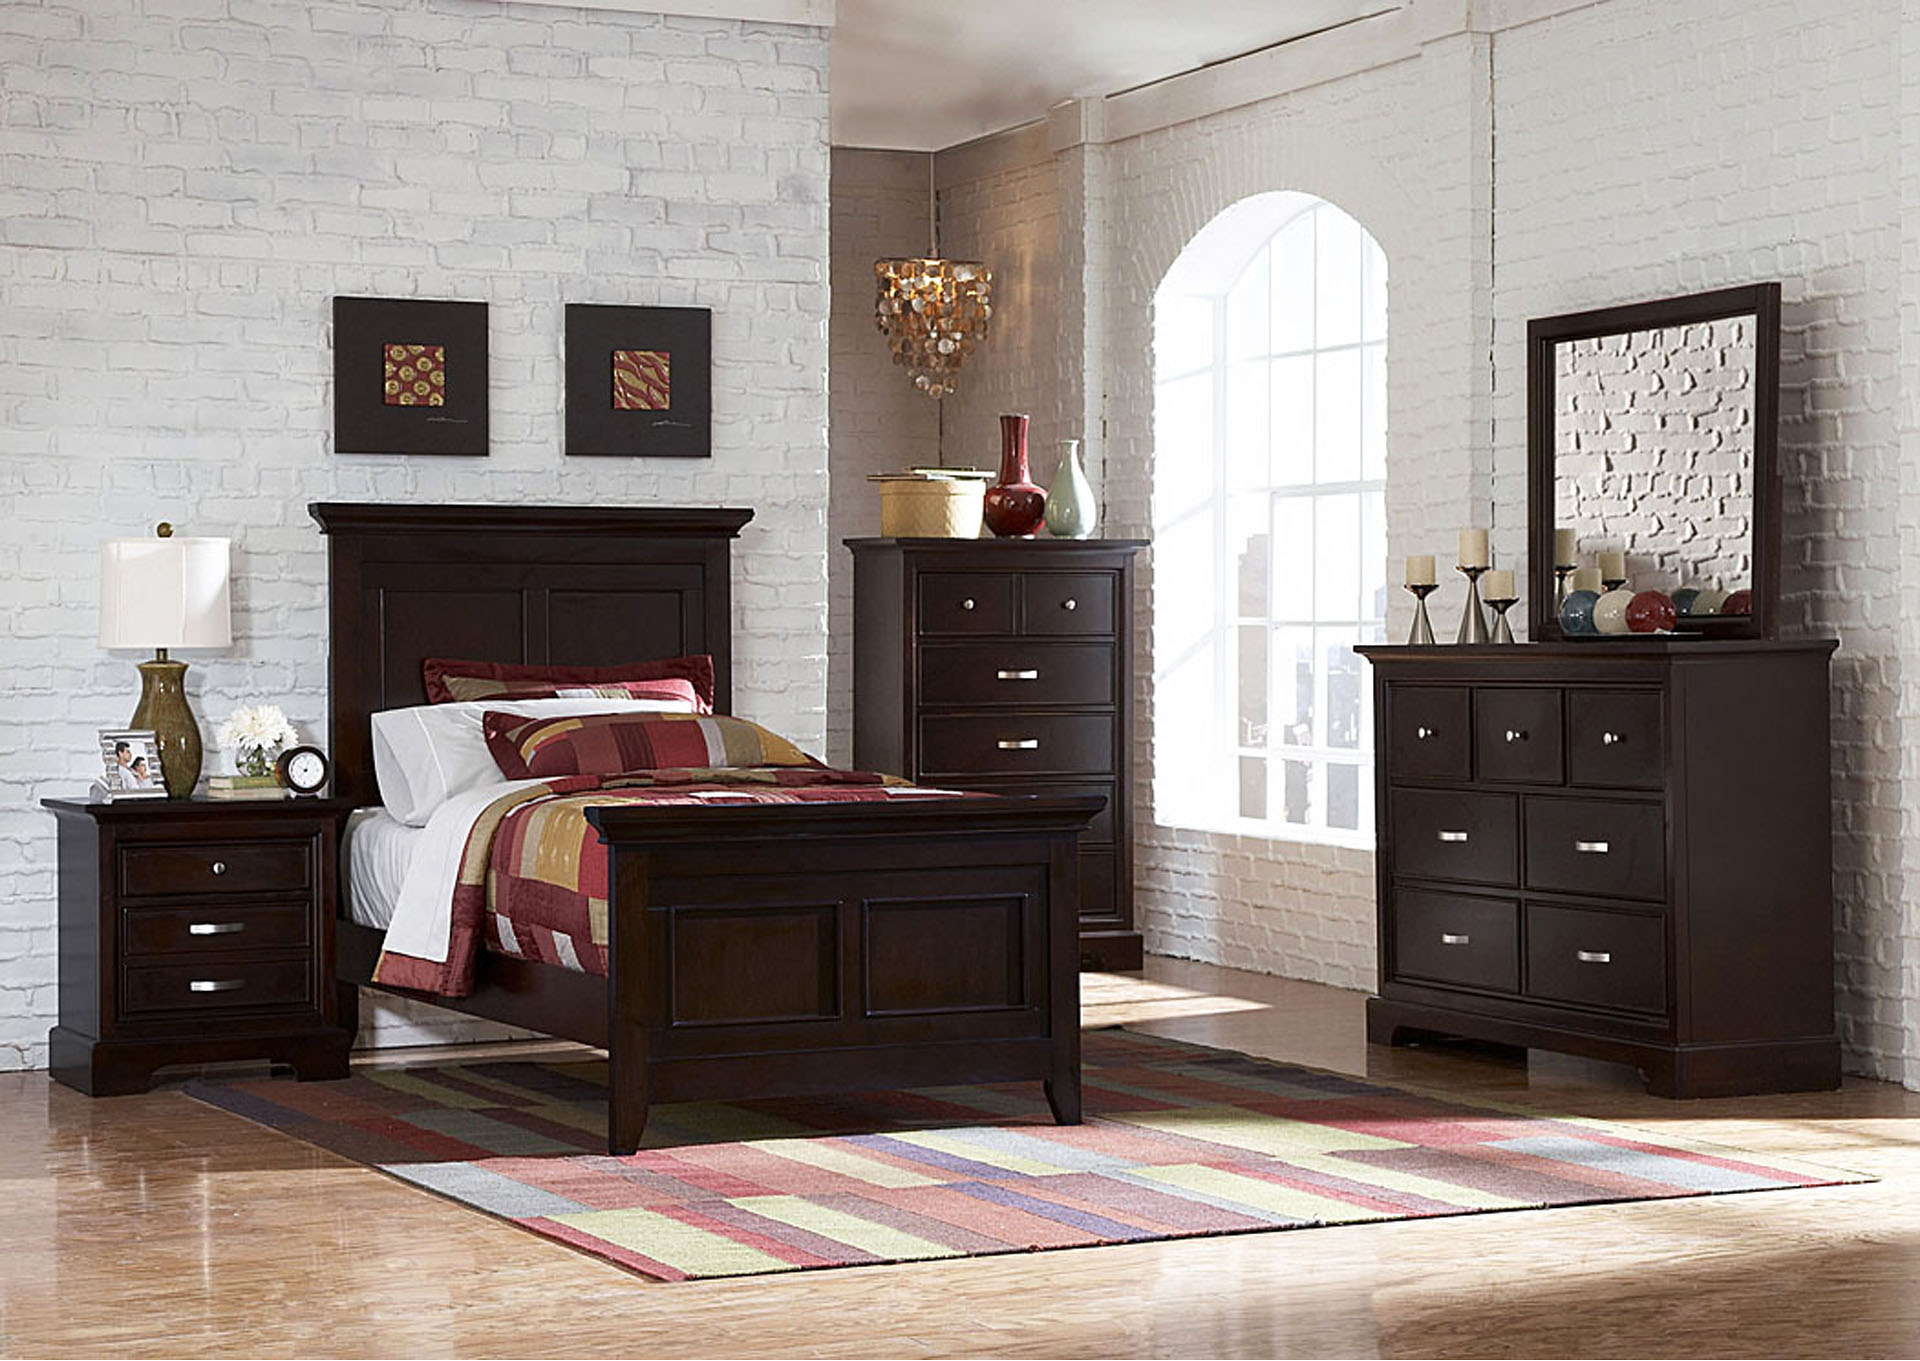 Glamour Espresso Twin Panel Bed,Homelegance